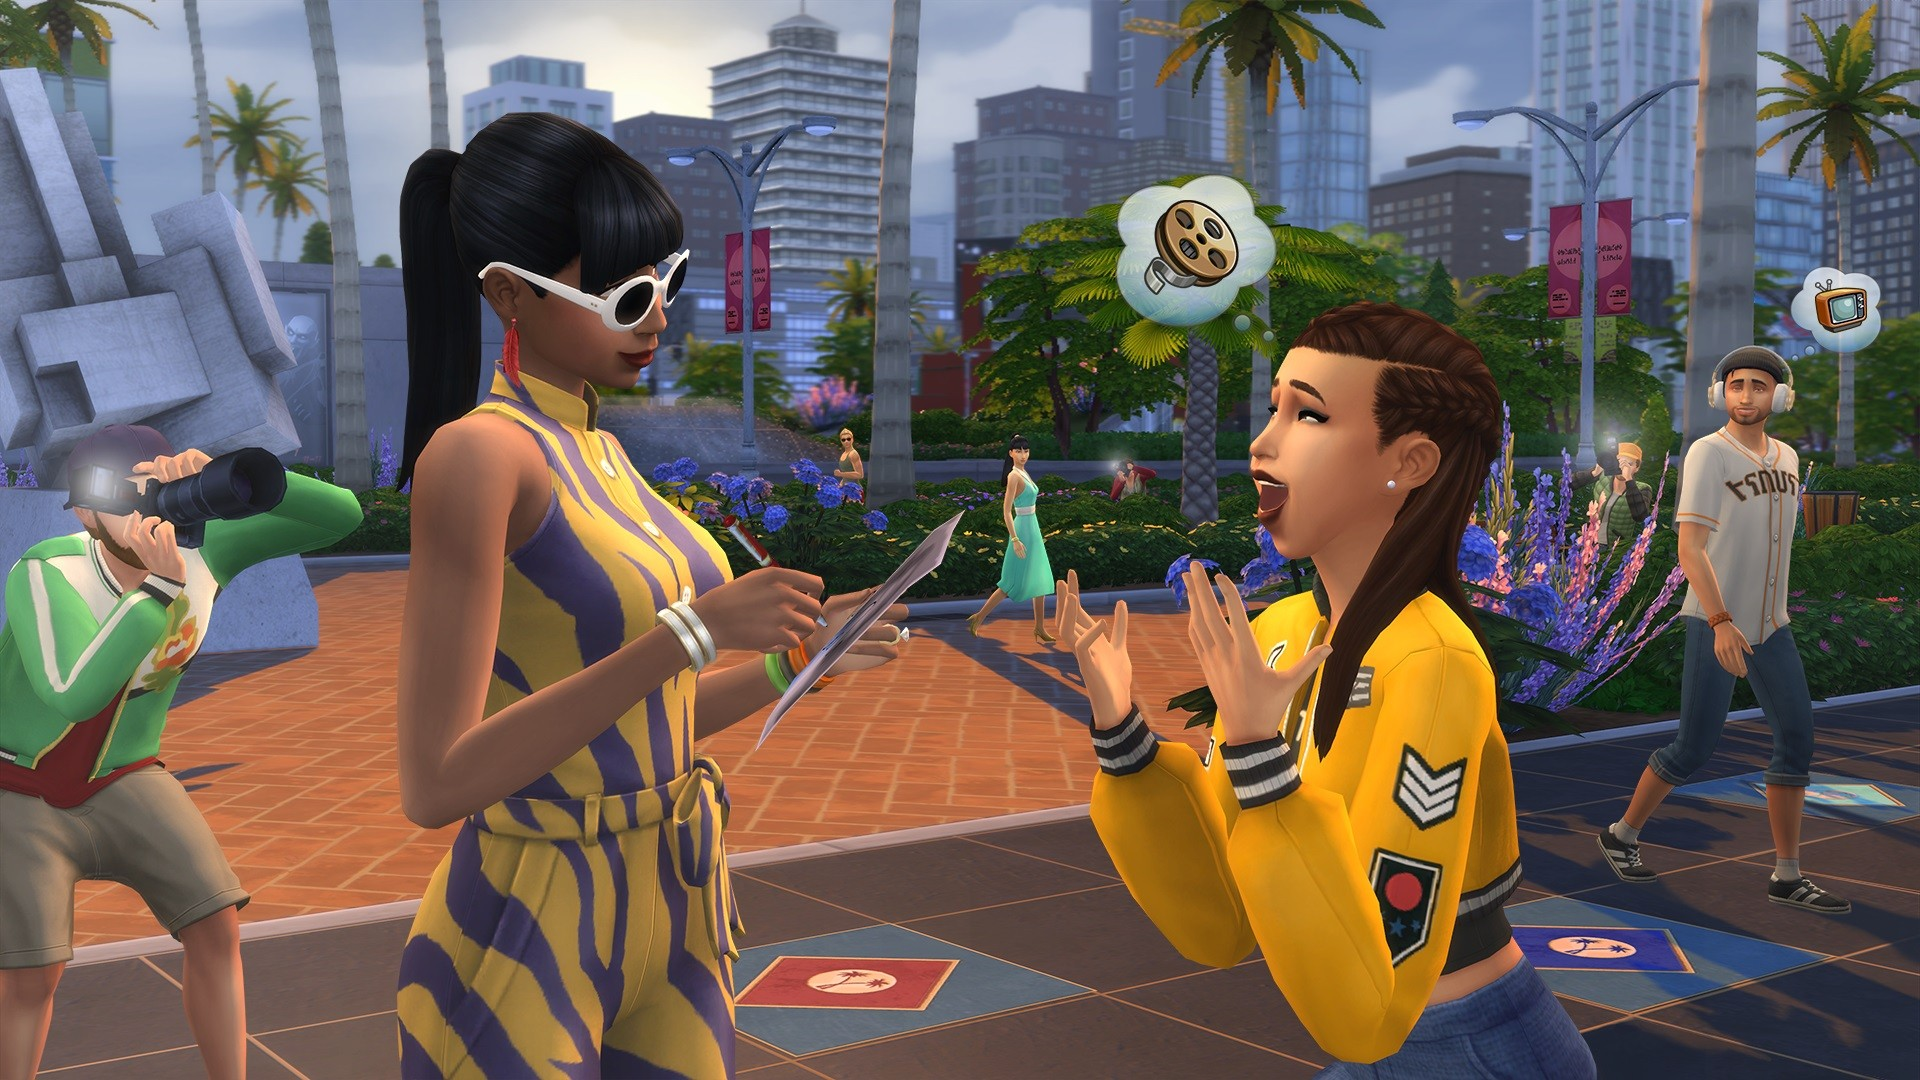 Fame (The Sims 4: Get Famous) | The Sims Wiki | FANDOM